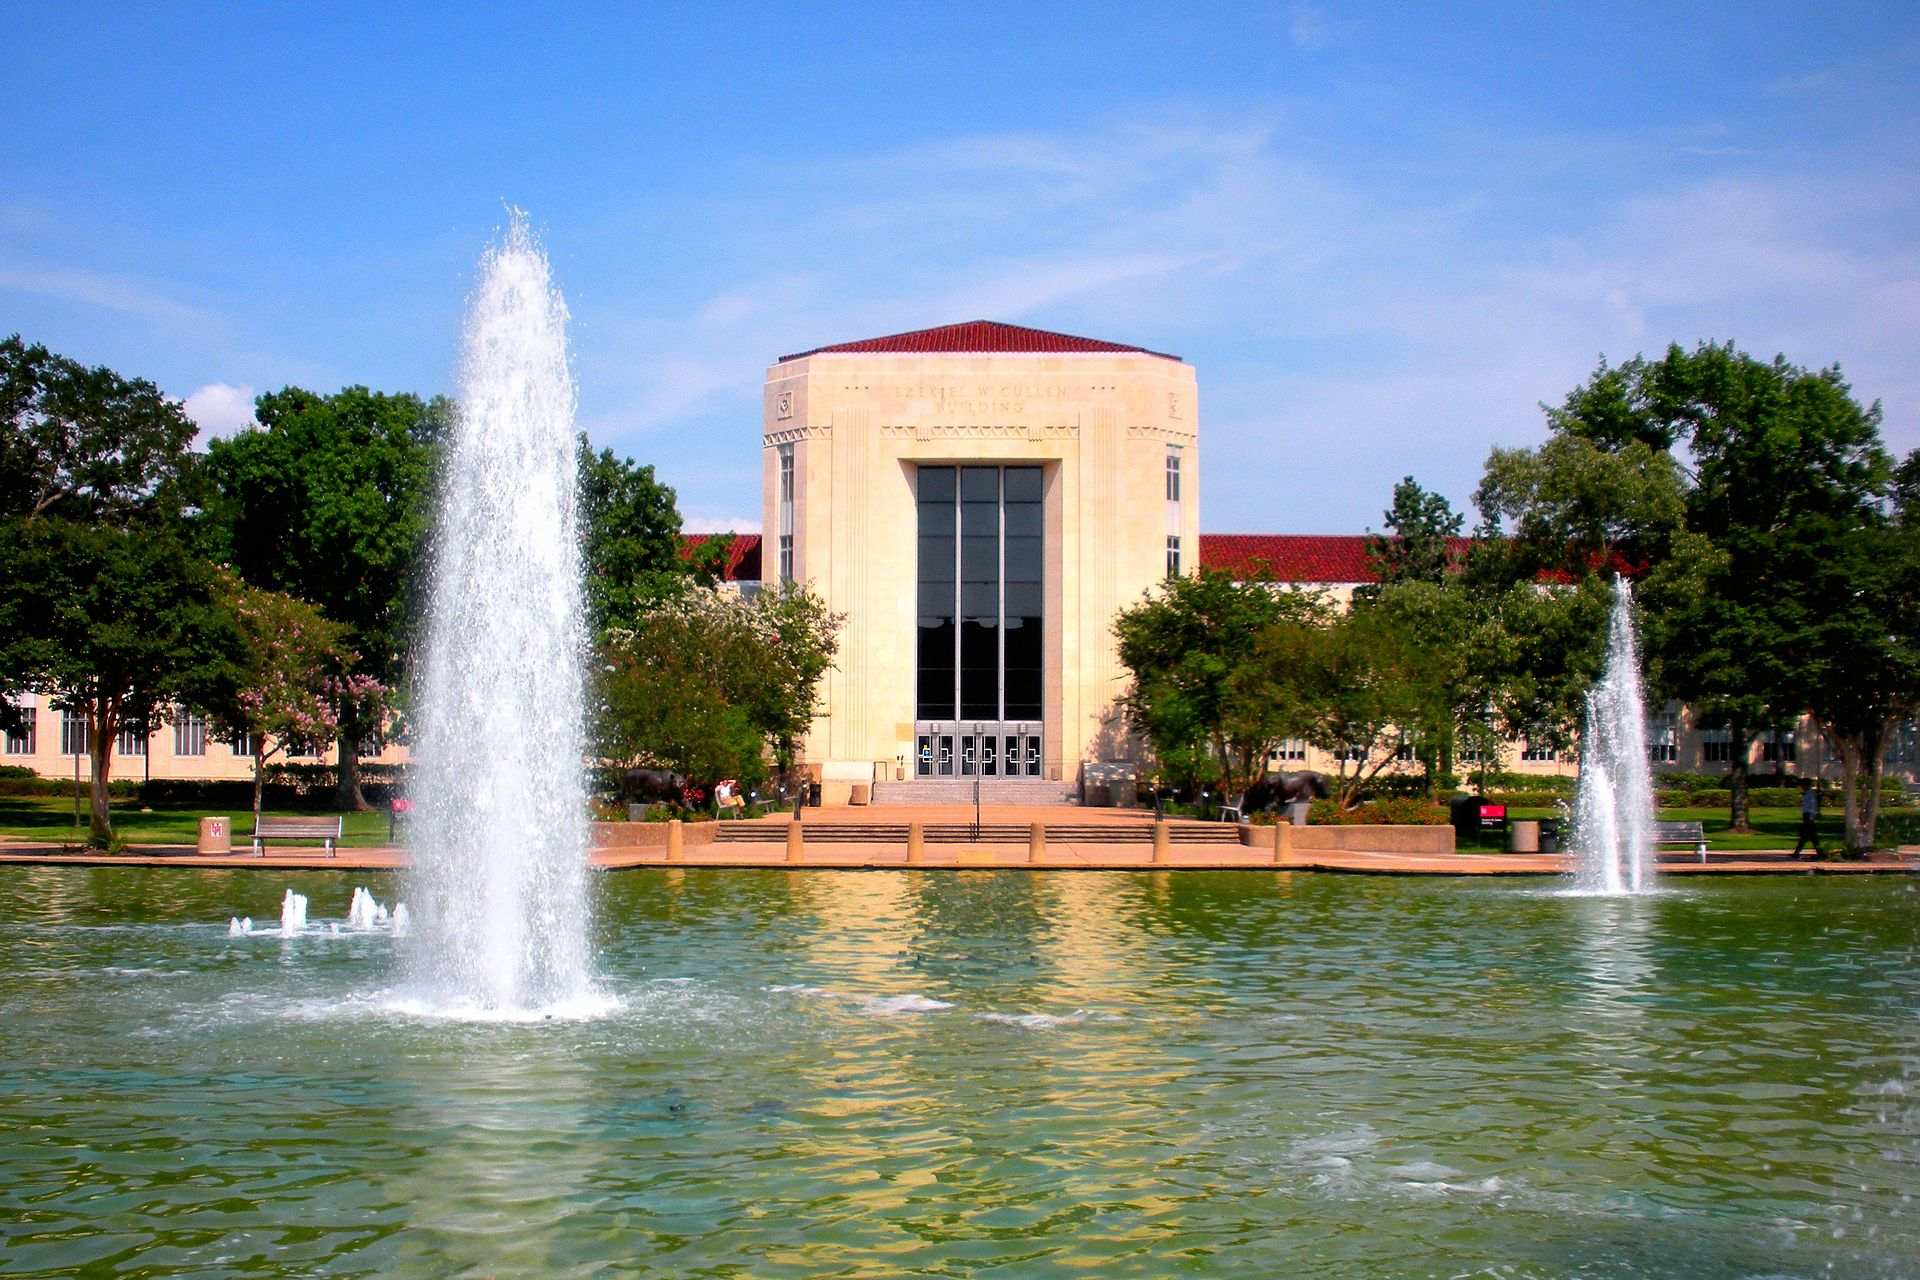 texas, University of Houston